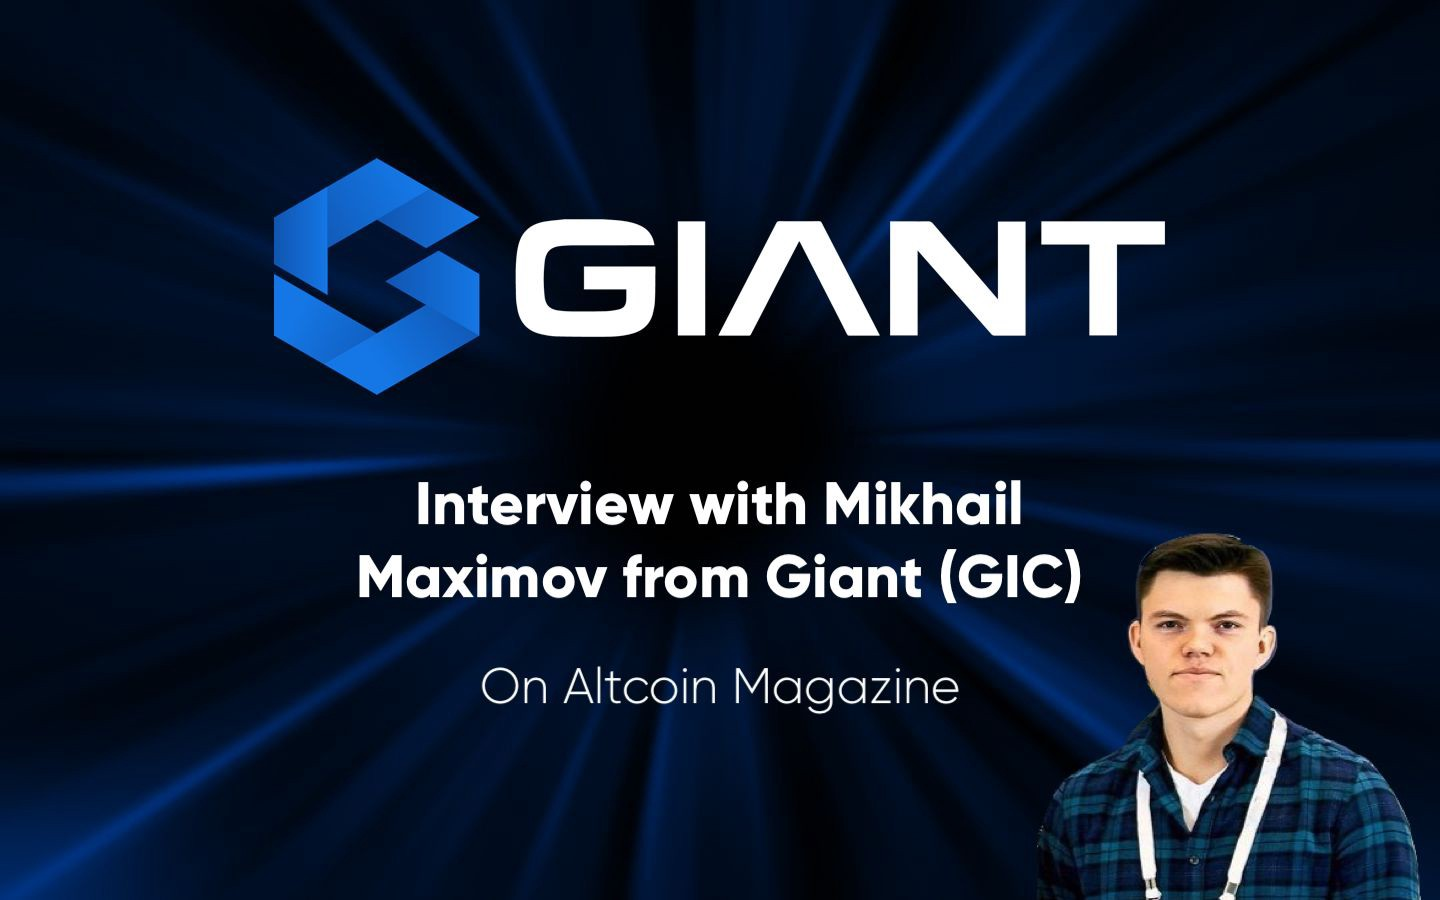 medium.com - An Interview with Community Lead Mikhail Maximov from Giant (GIC) on Altcoin Magazine